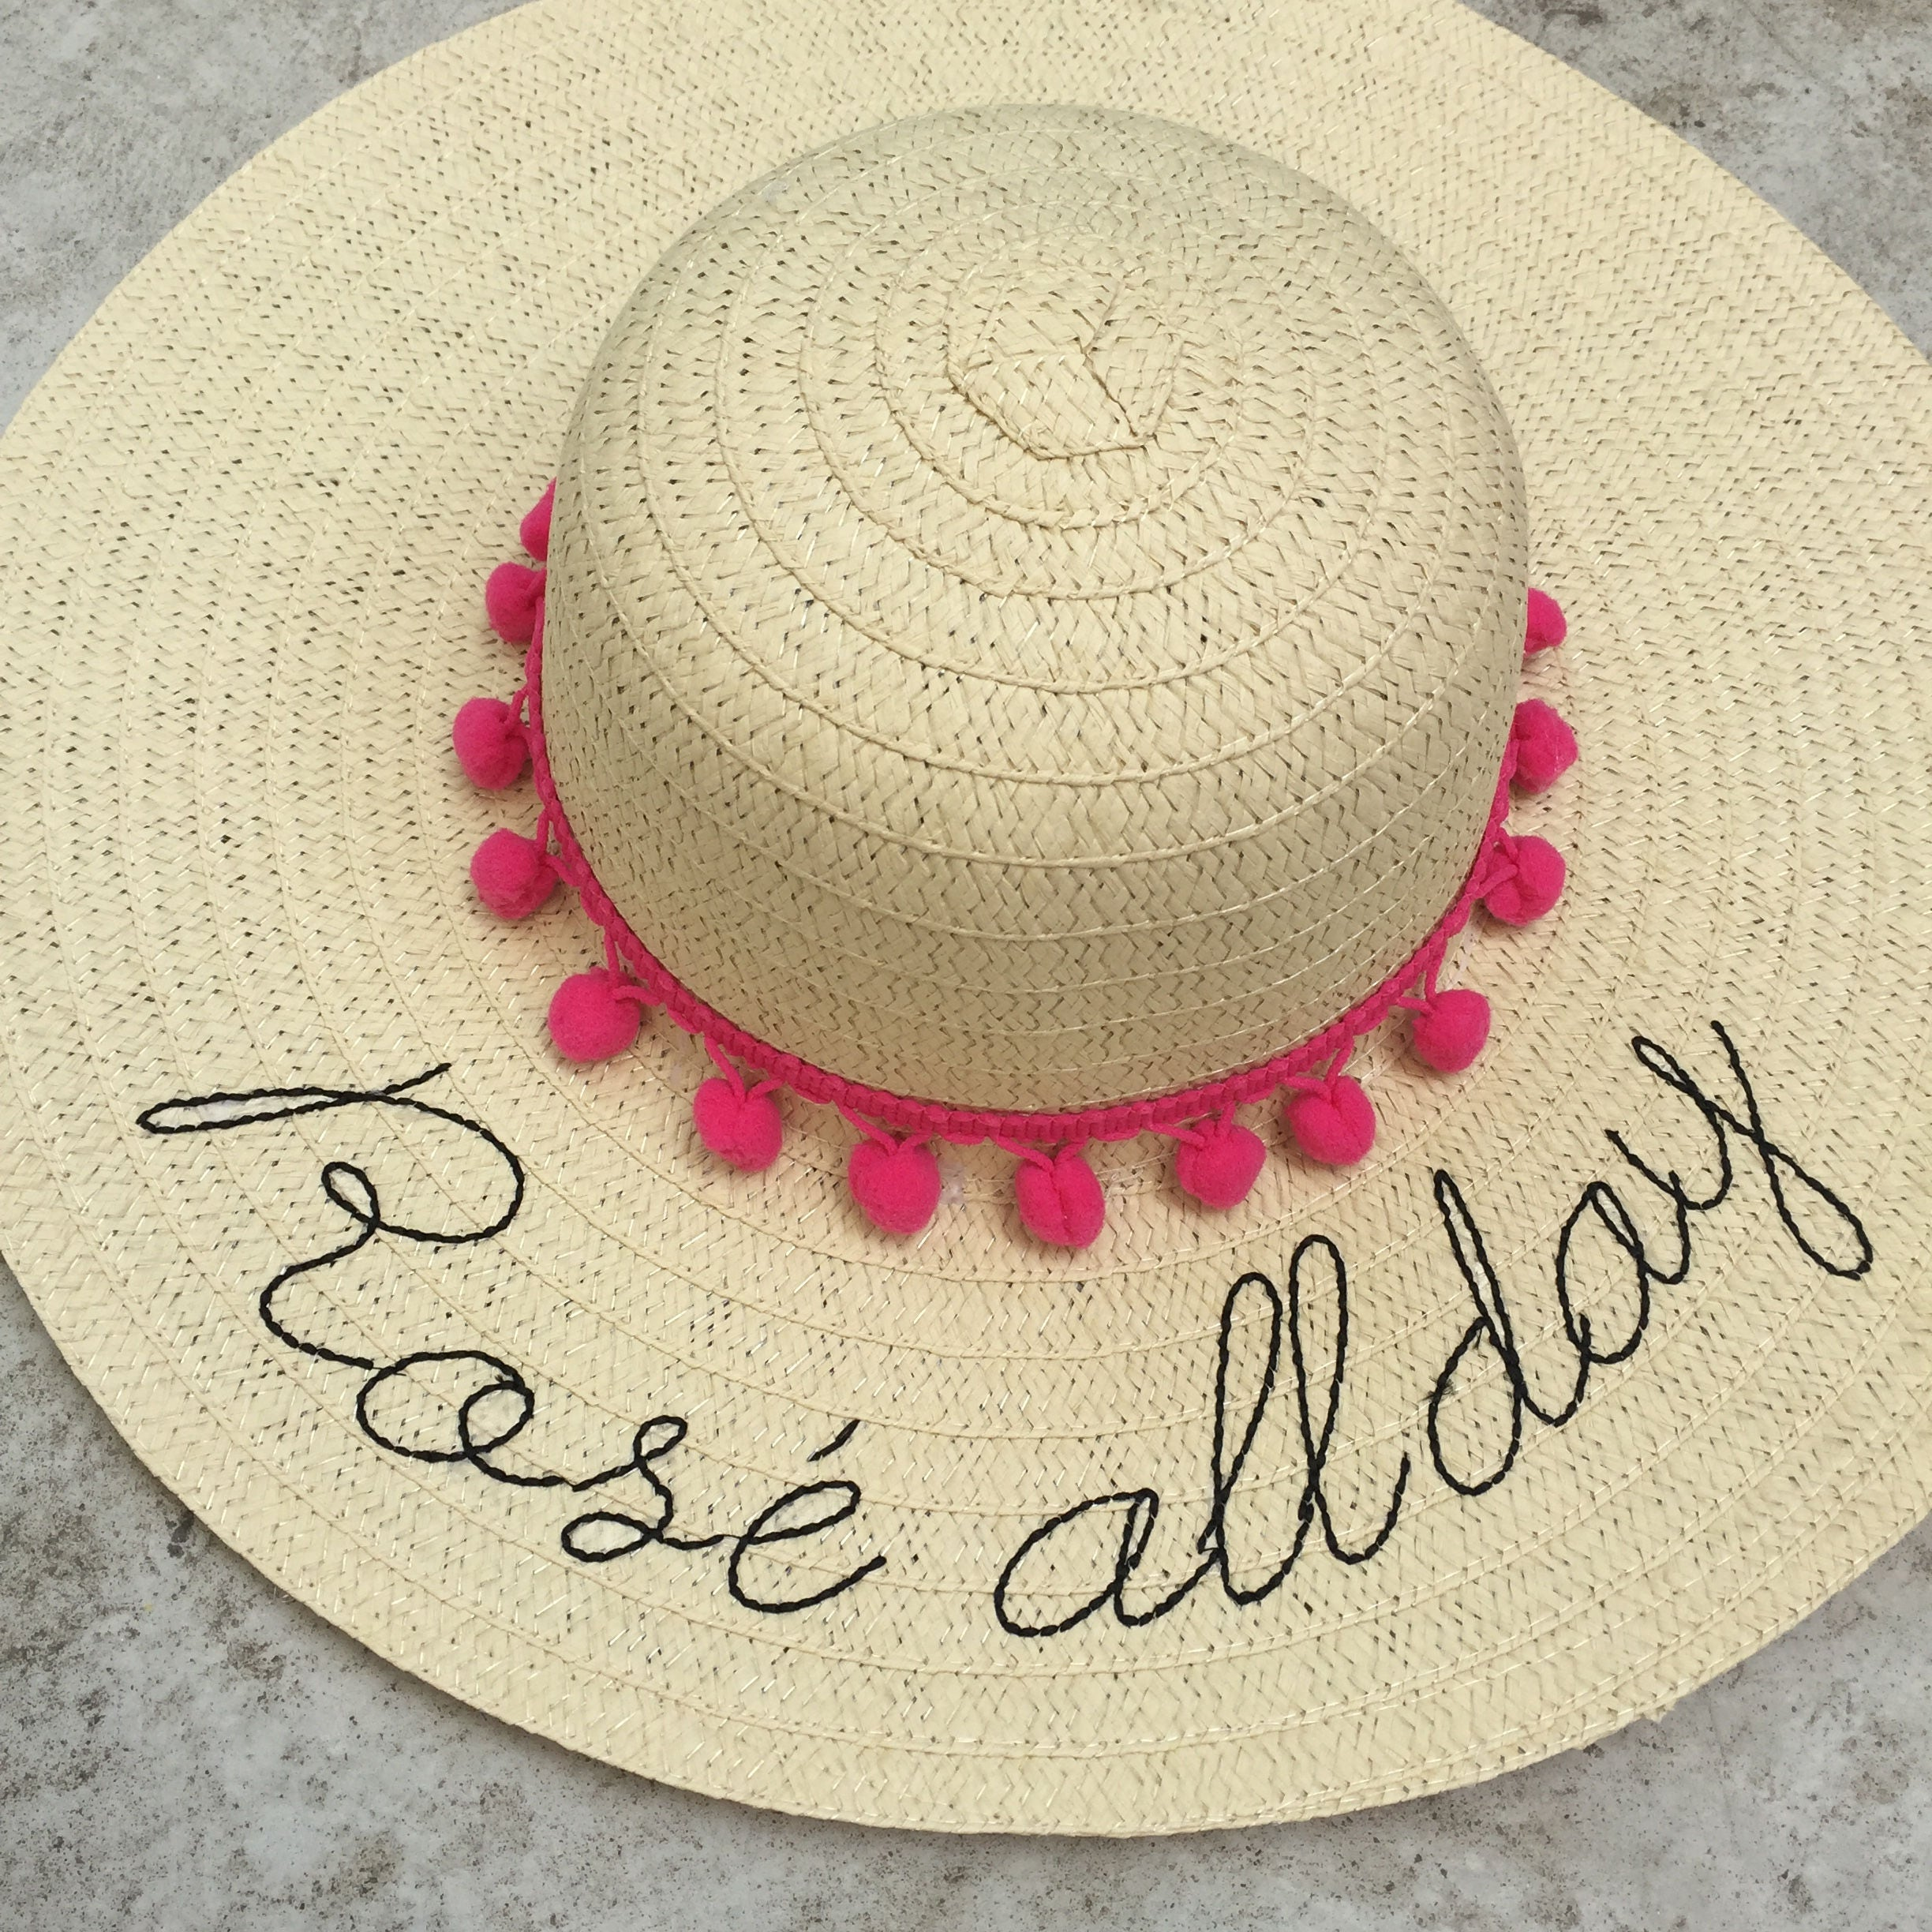 Floppy Hat Embroidered  Rose All Day  Straw Hat  Gift  Summer Hat